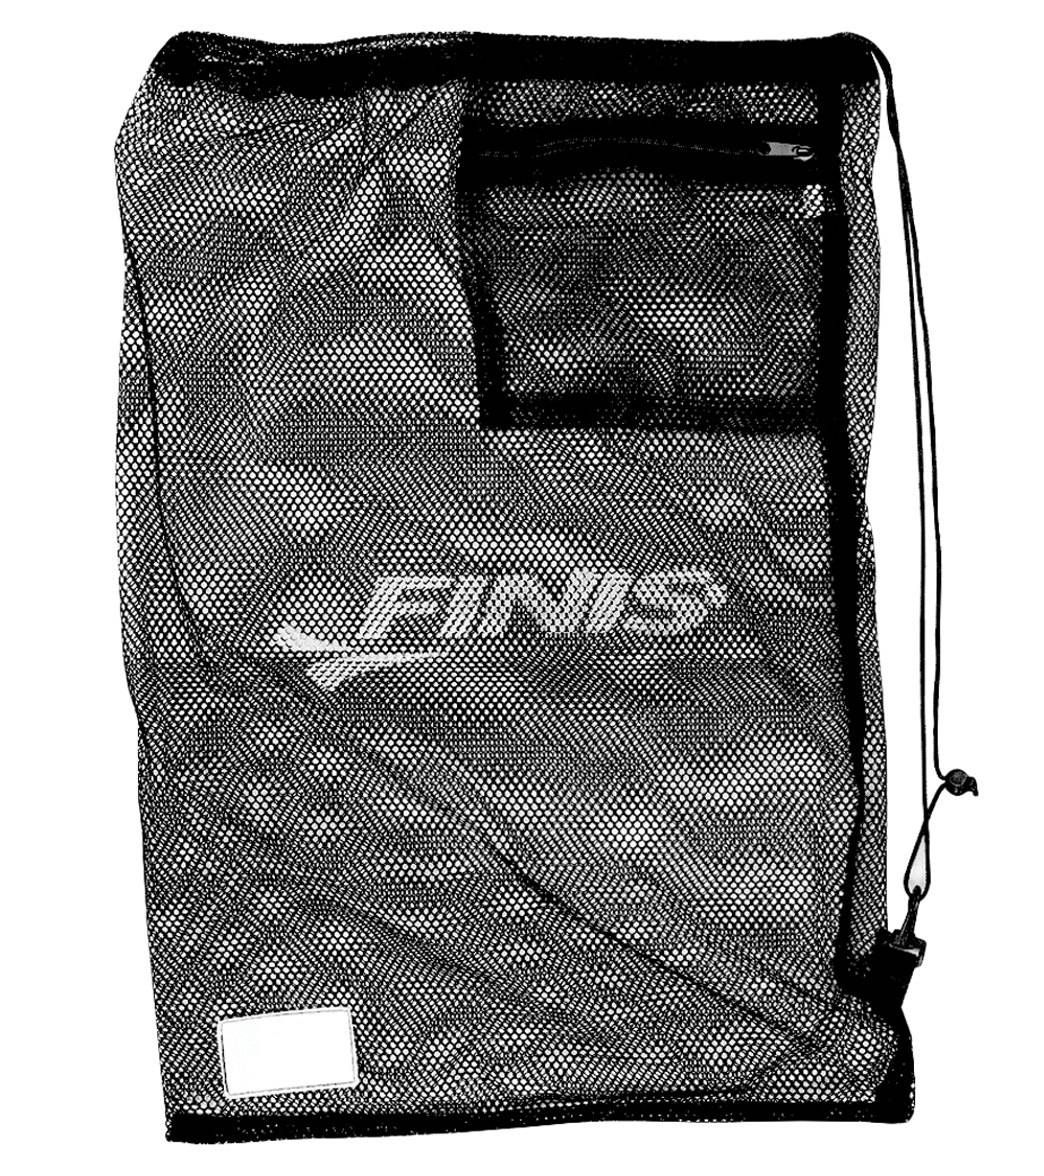 The Mesh Gear Bag Is A Convenient Way To All Swim Equipment Made Of Durable Nylon Material That Lets Air Flow Freely For